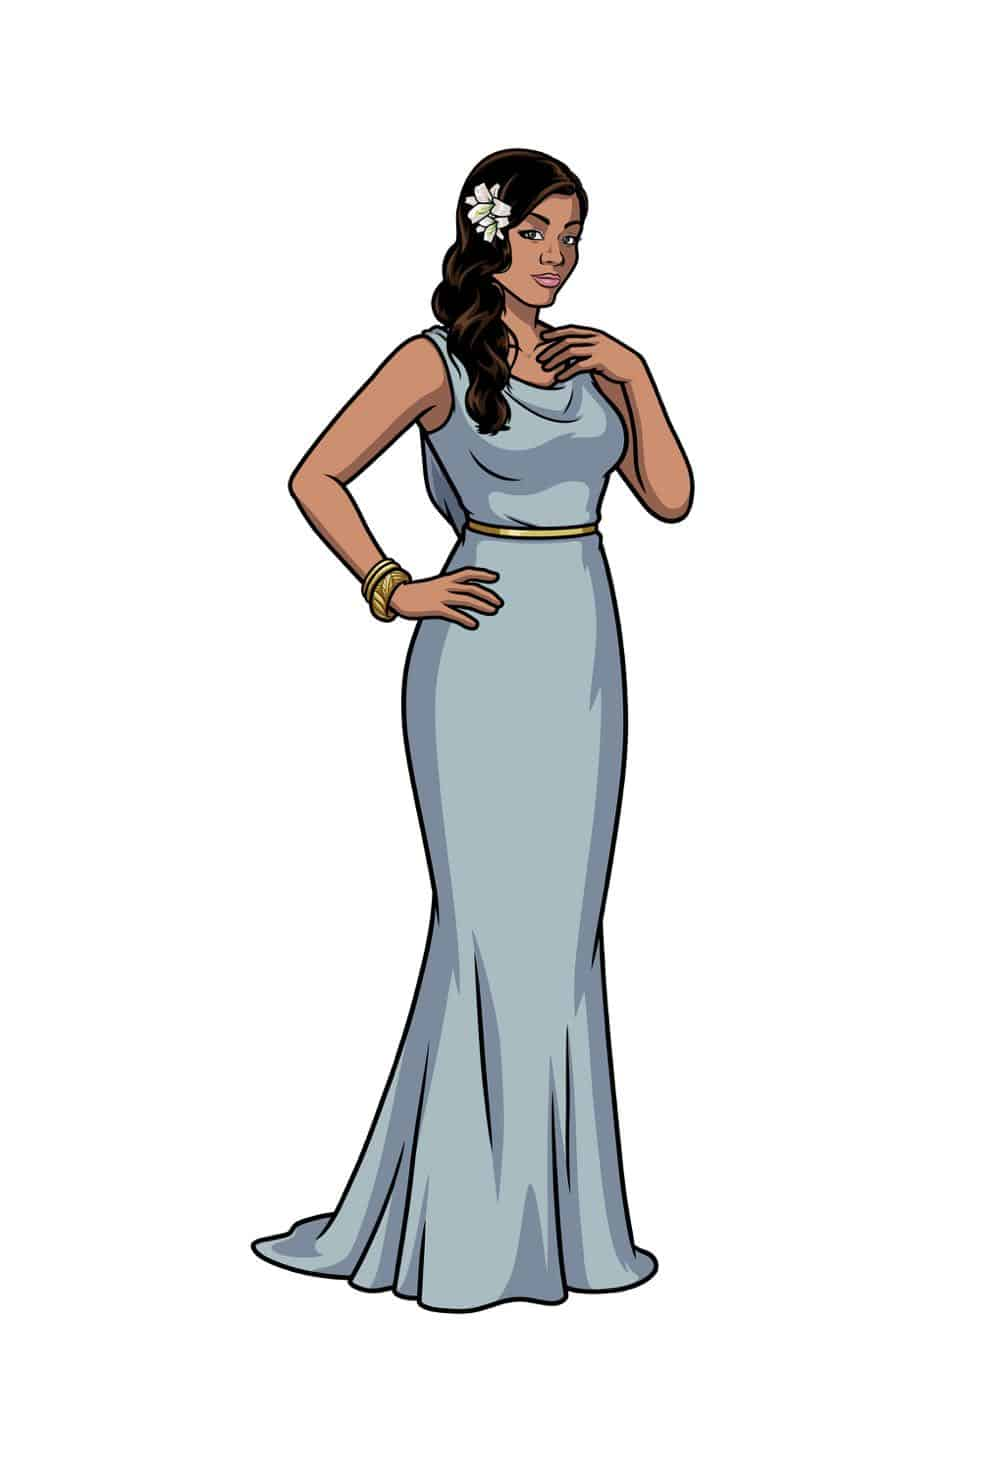 ARCHER --  Pictured:  Princess Lanaluakalani (voice of Aisha Tyler). CR: FXX